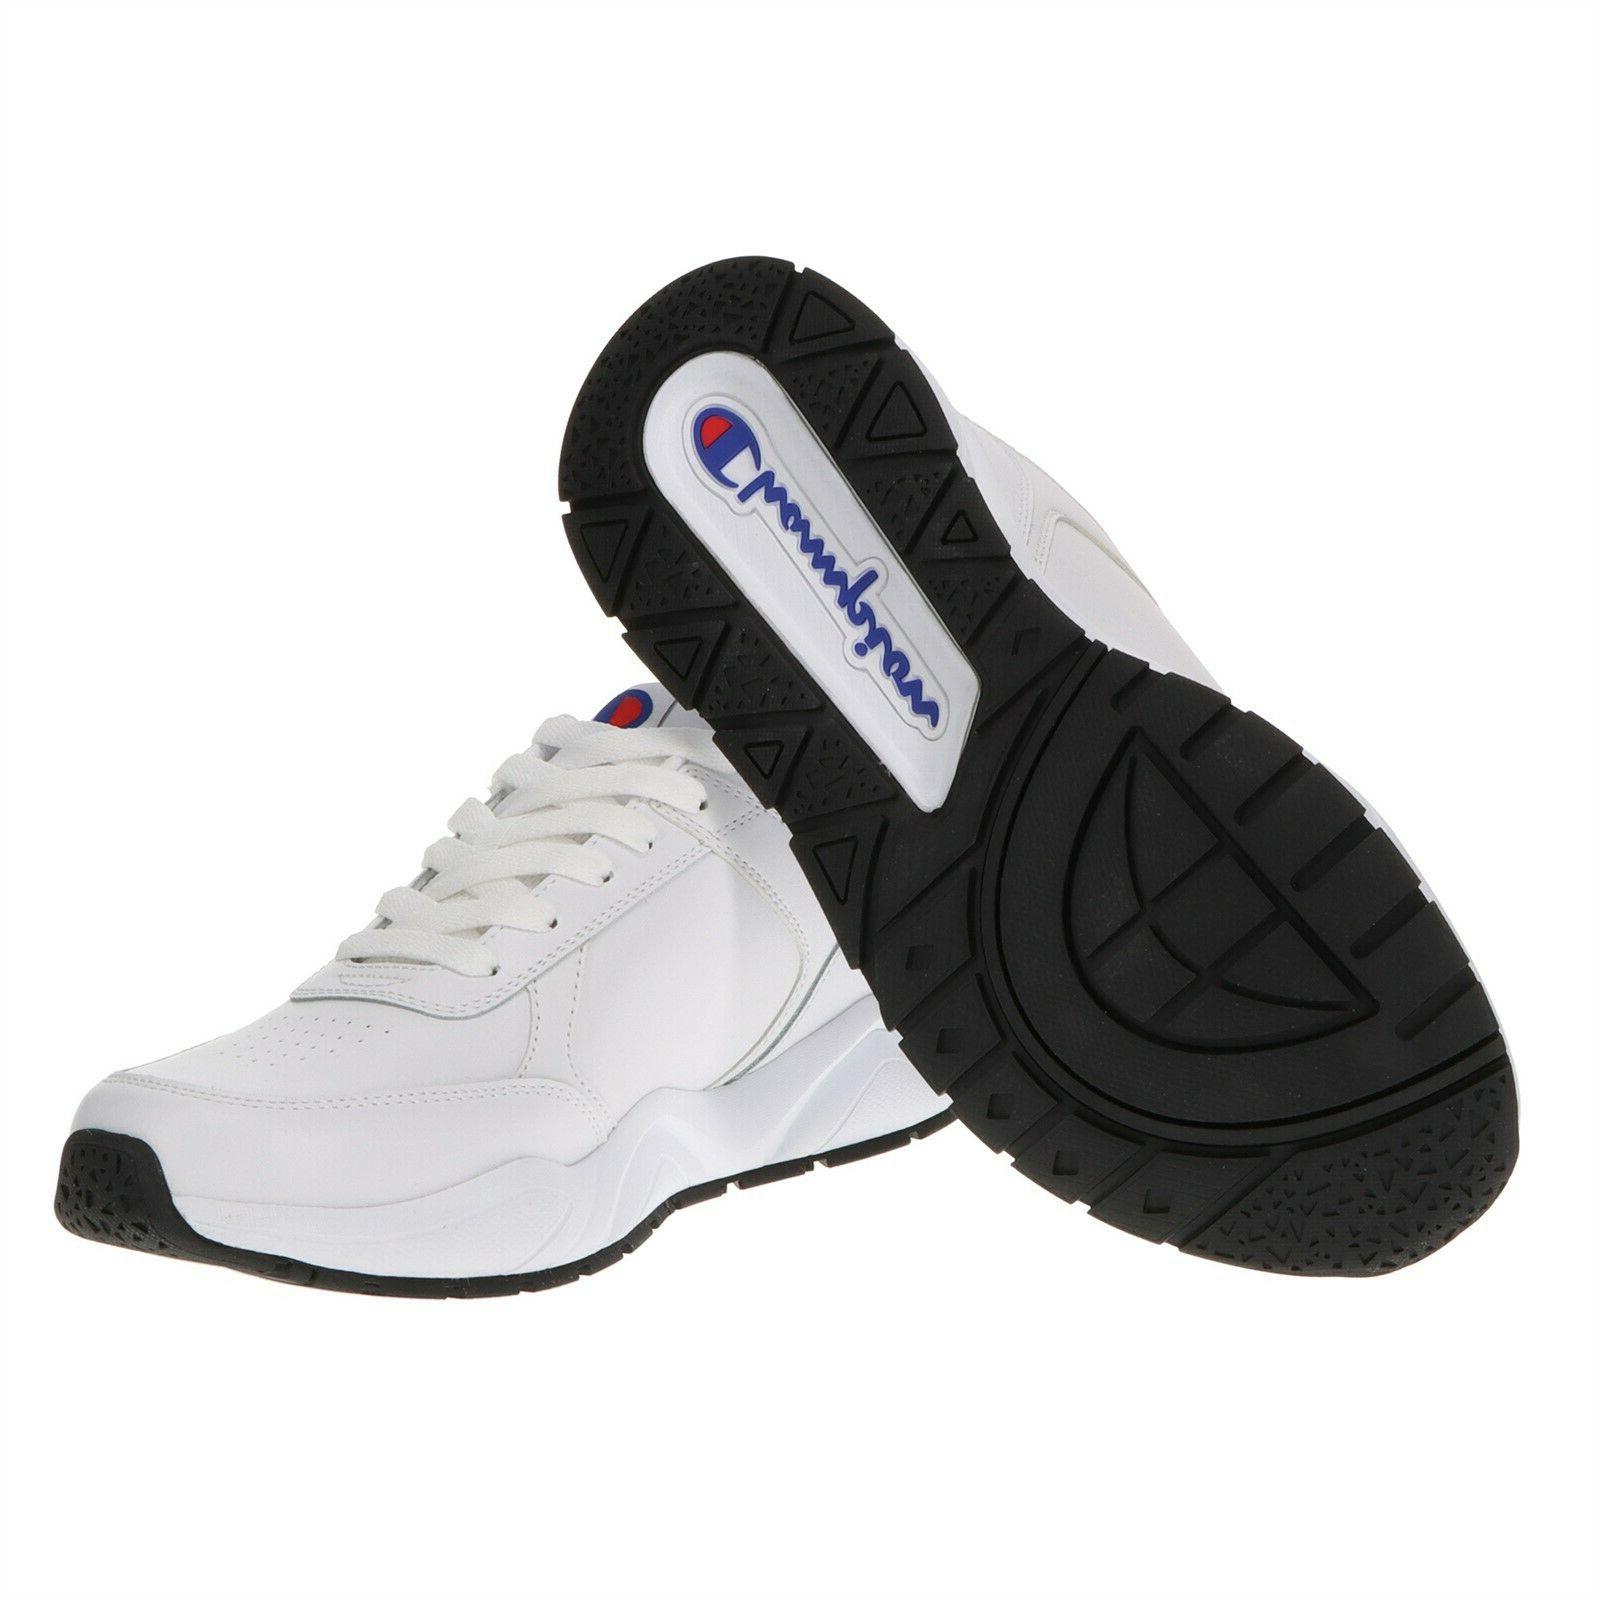 Champion White Classic Sneaker Shoes Running